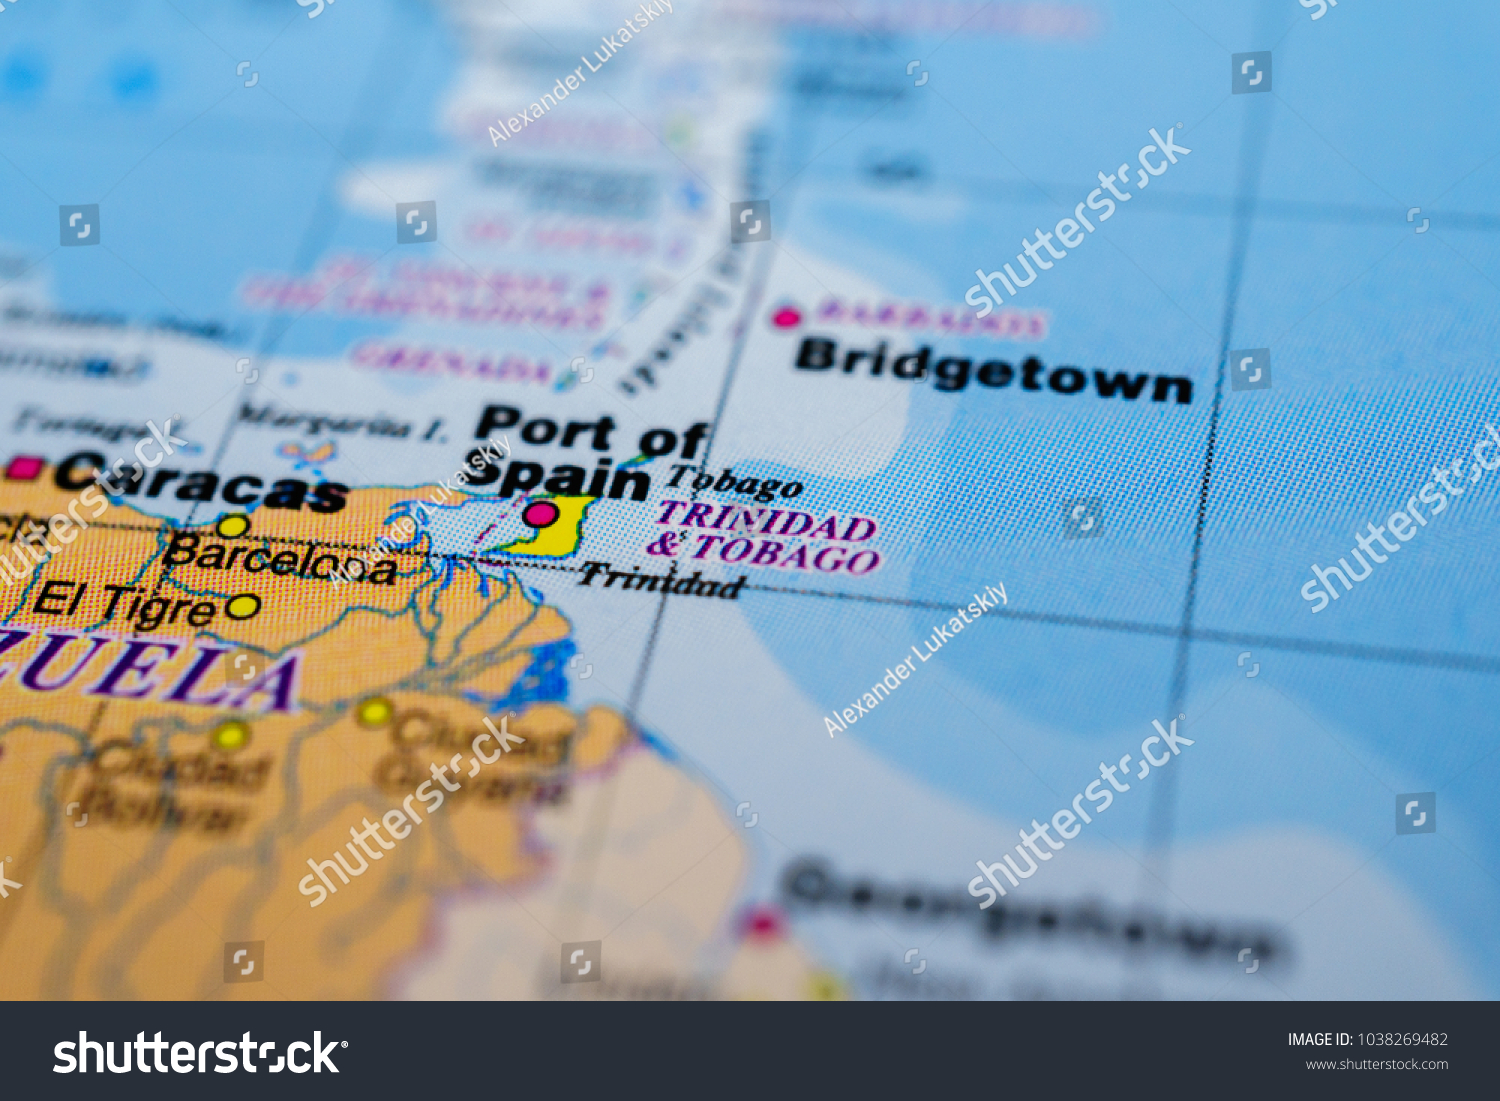 Picture of: Trinidad Tobago On Map Backgrounds Textures Stock Image 1038269482